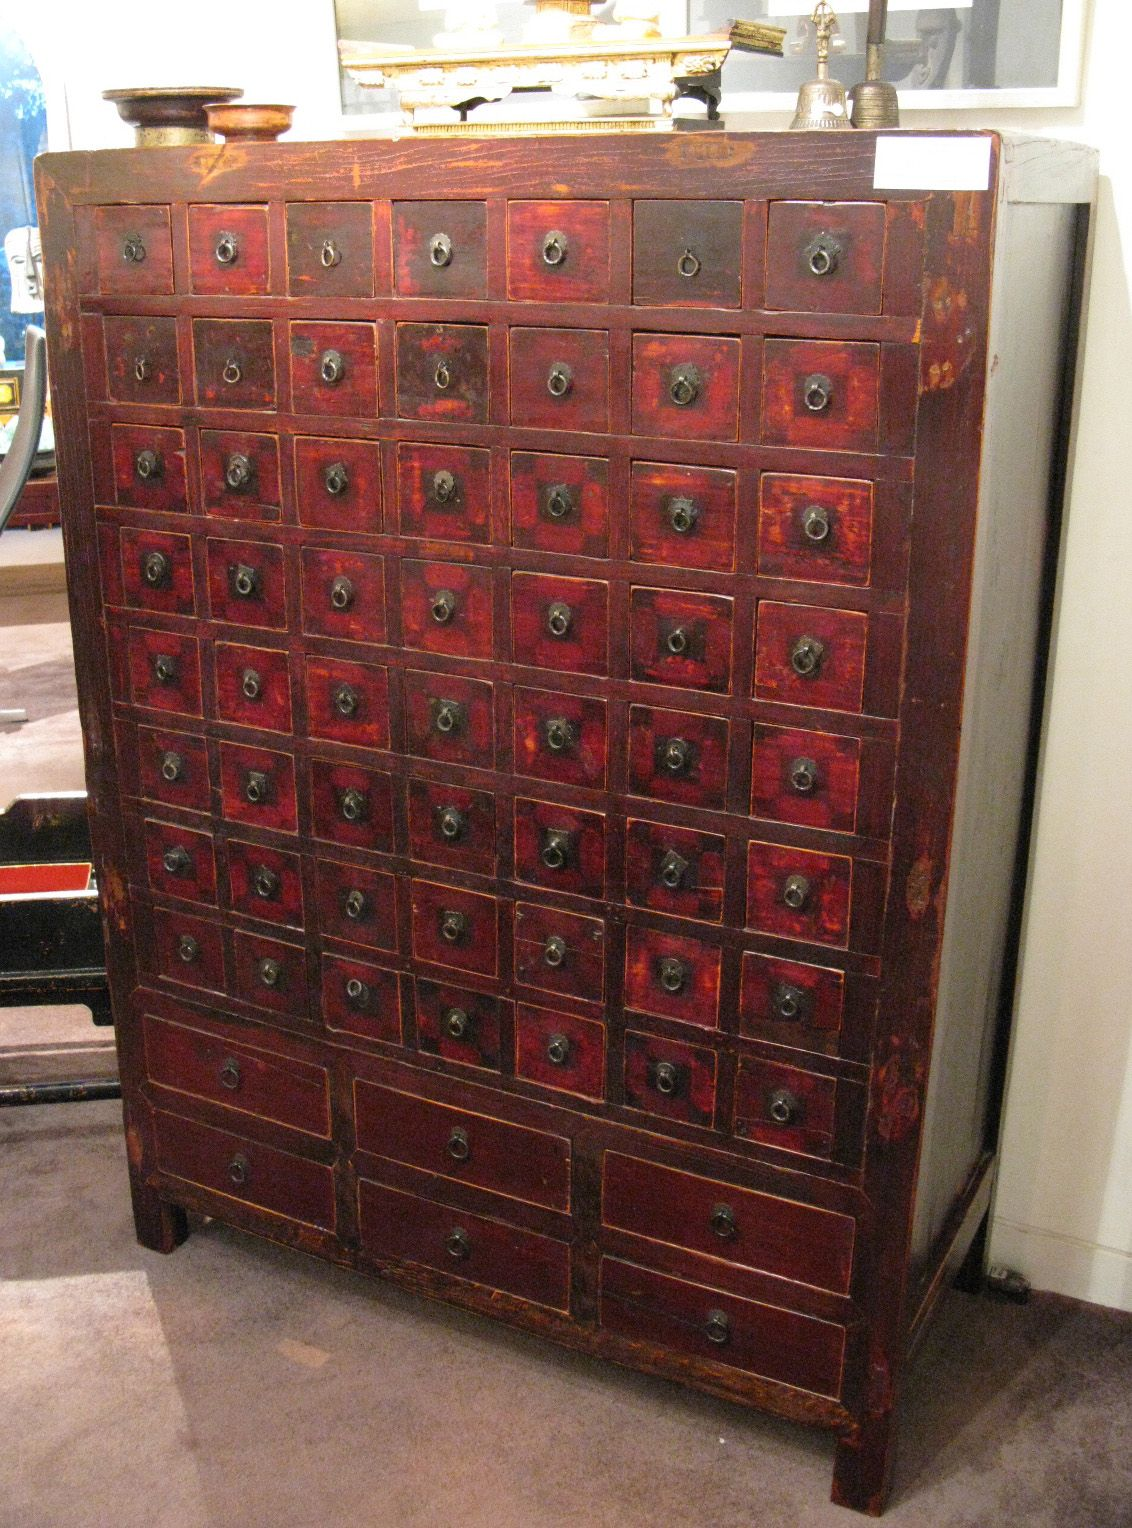 From The Name Of The Photo This Is A Century Antique Chinese Apothecary  Tall Cabinet With 56 Small Drawers And 6 Large Drawers.